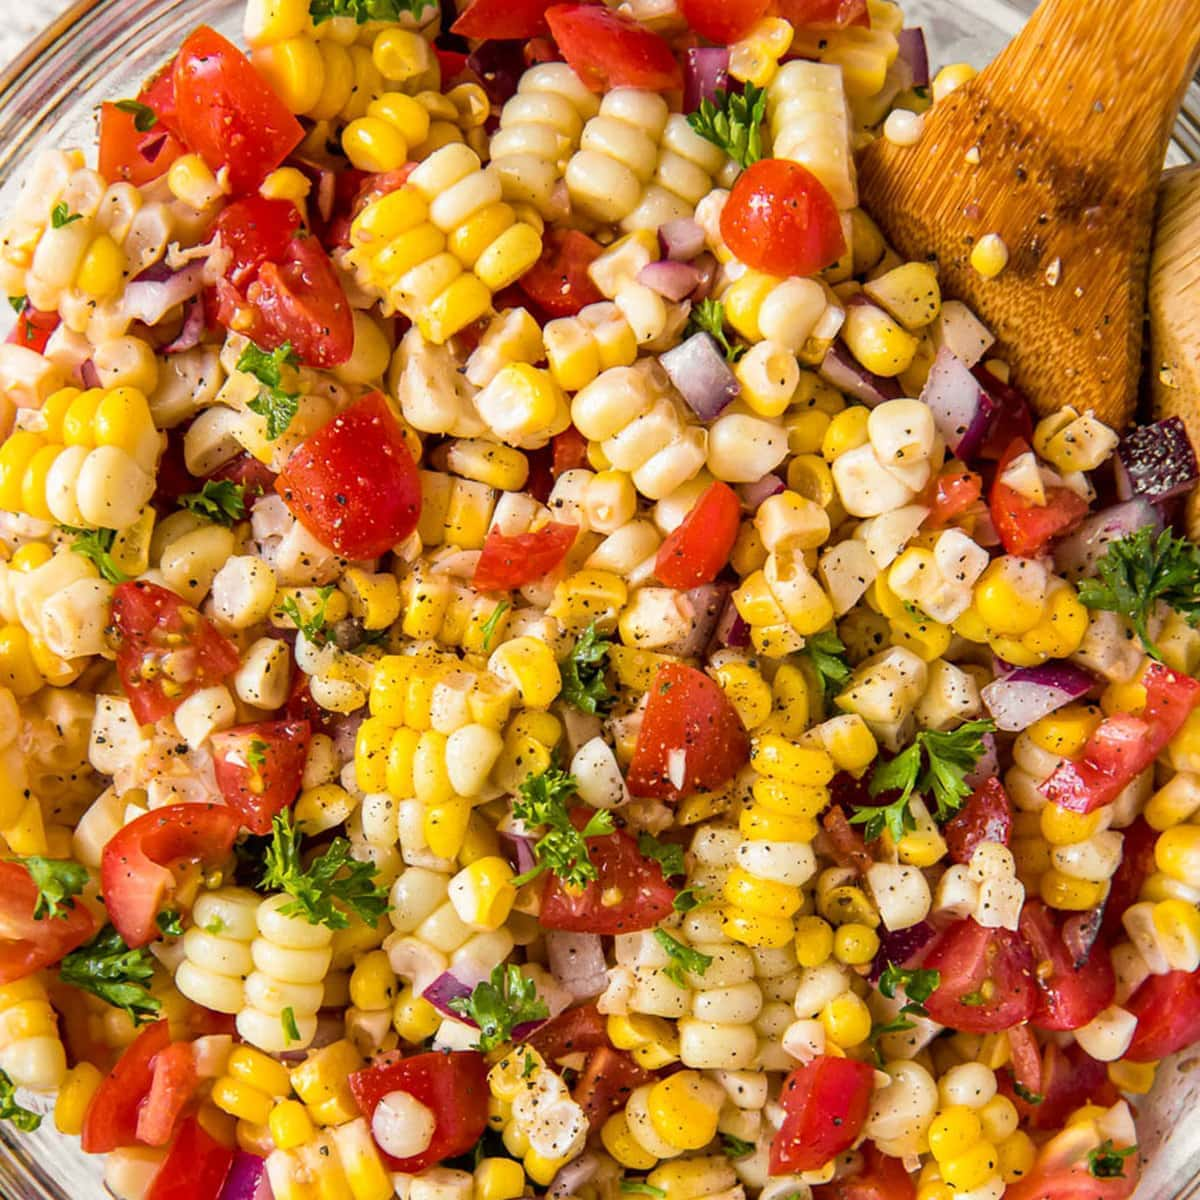 A dish full of corn salad with tomatoes